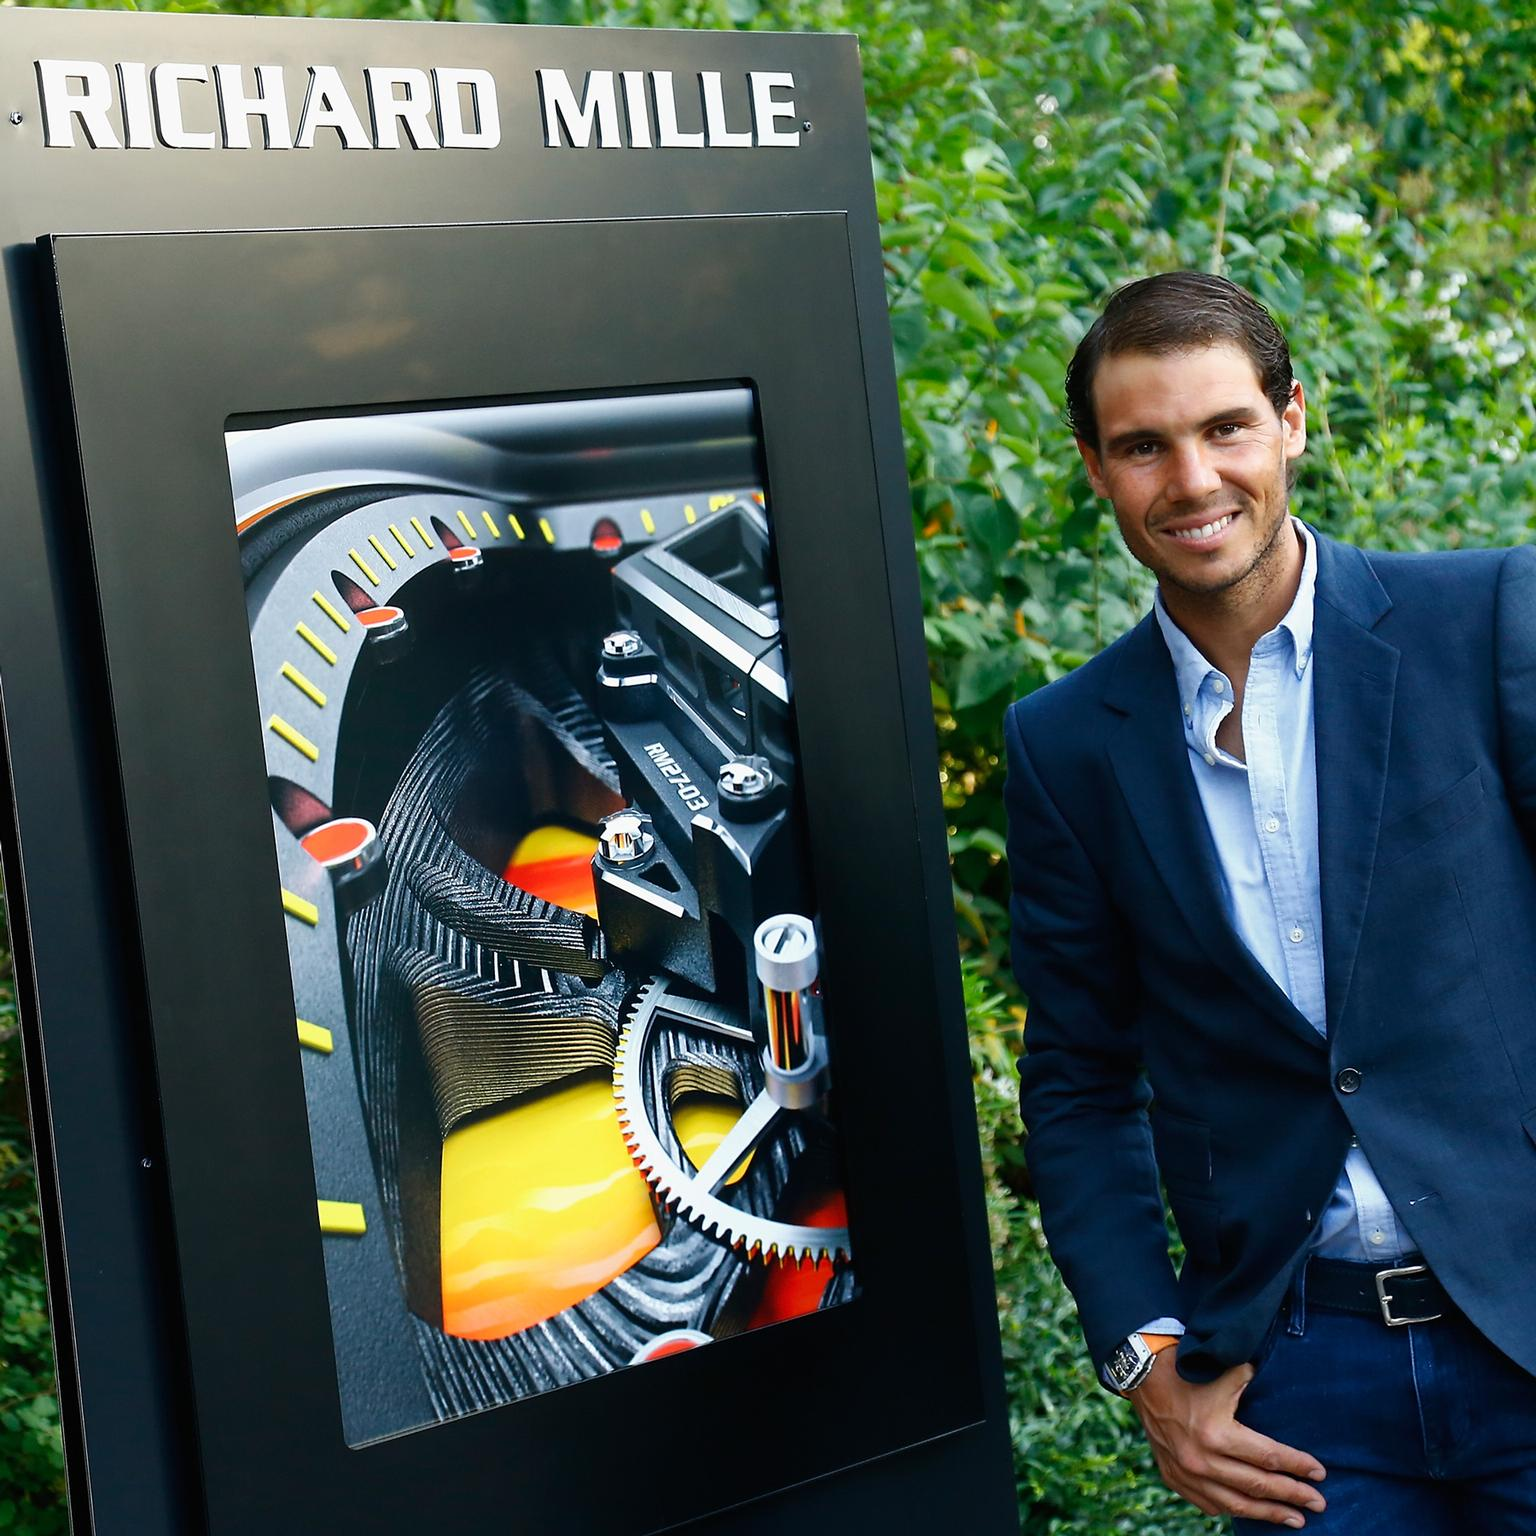 Rafael Nadal next to a Richard Mille billboard